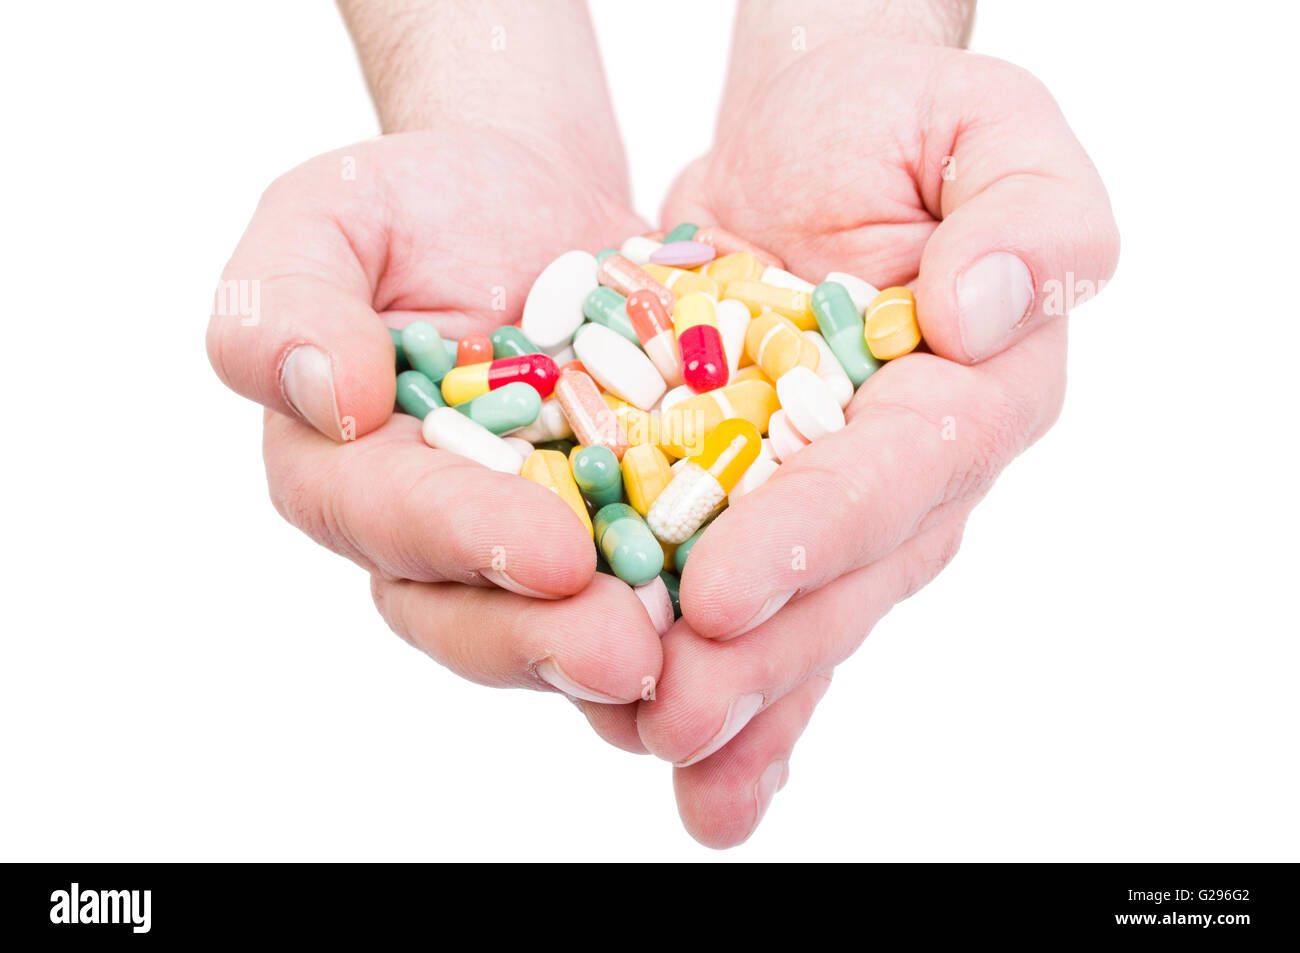 Both hands holding bunch of pills. Overdose or abuse concept on white background - Stock Image